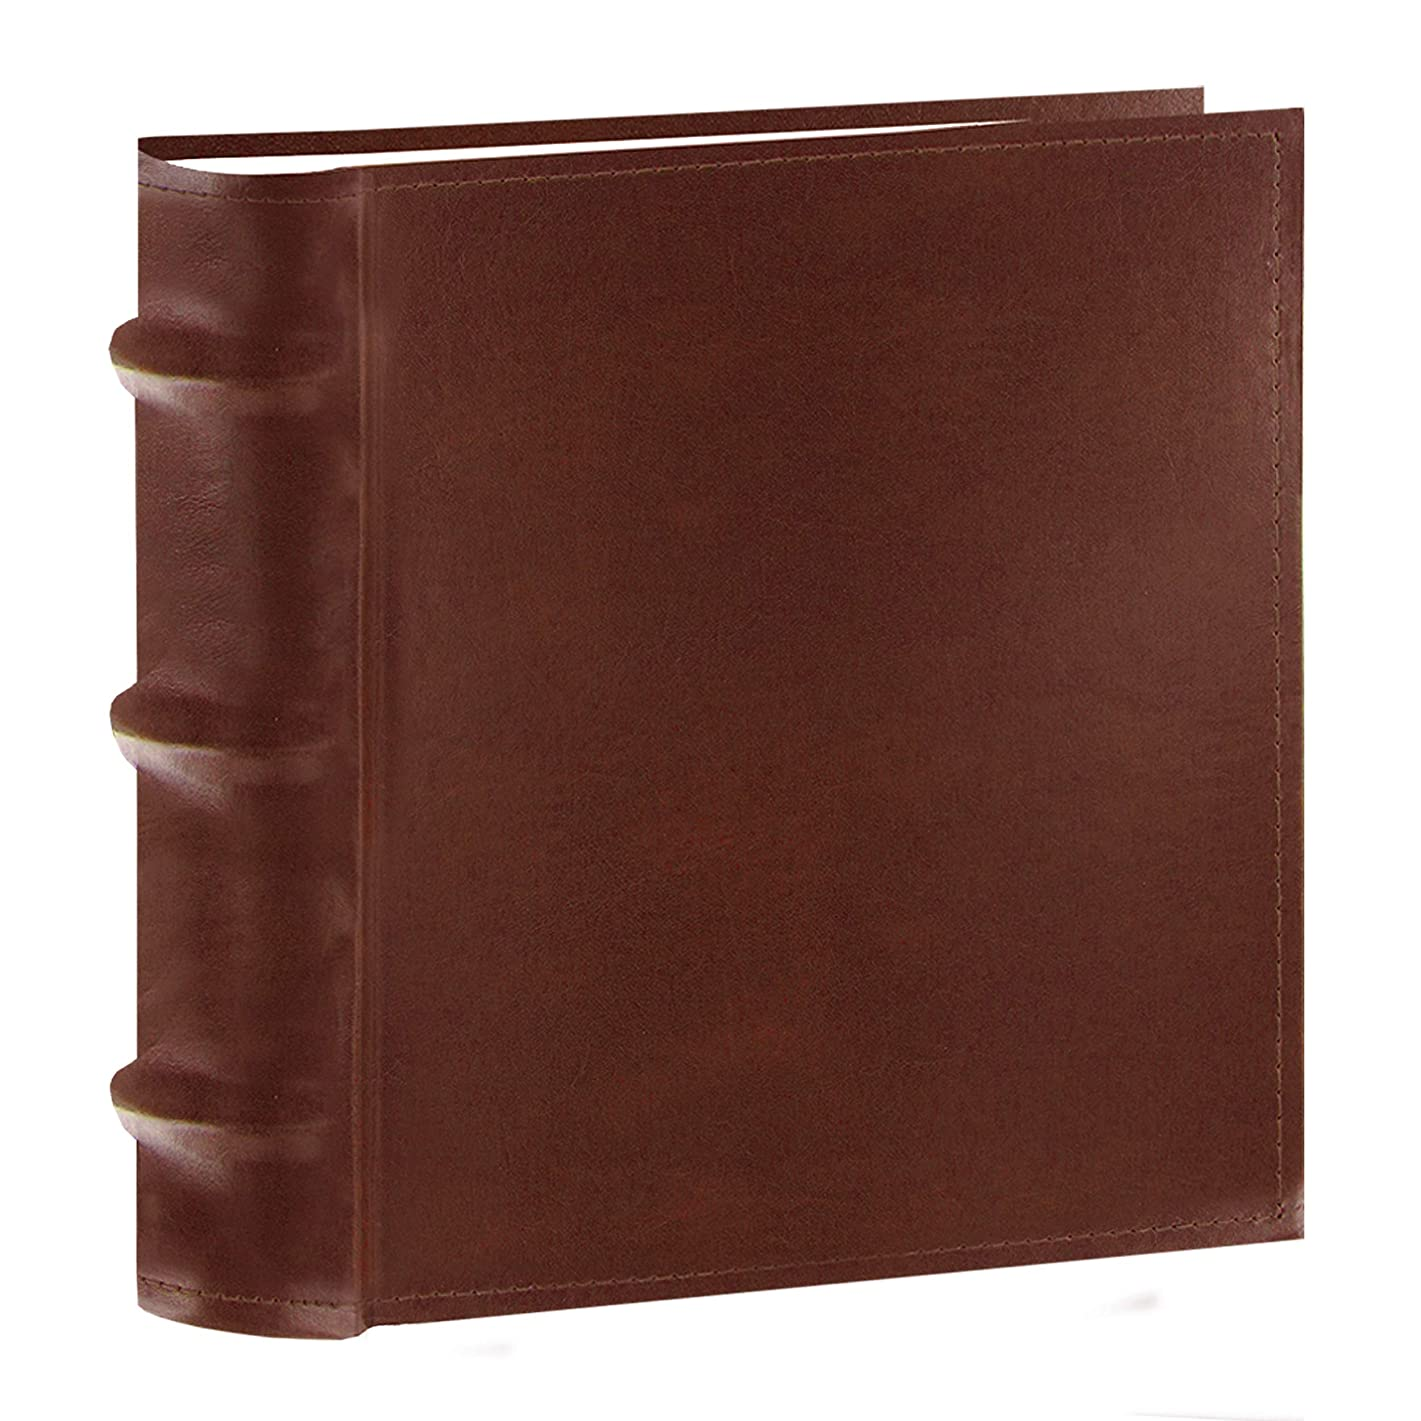 Pioneer CLB-146 Bonded Leather Photo Album, 100 Pockets Hold 4